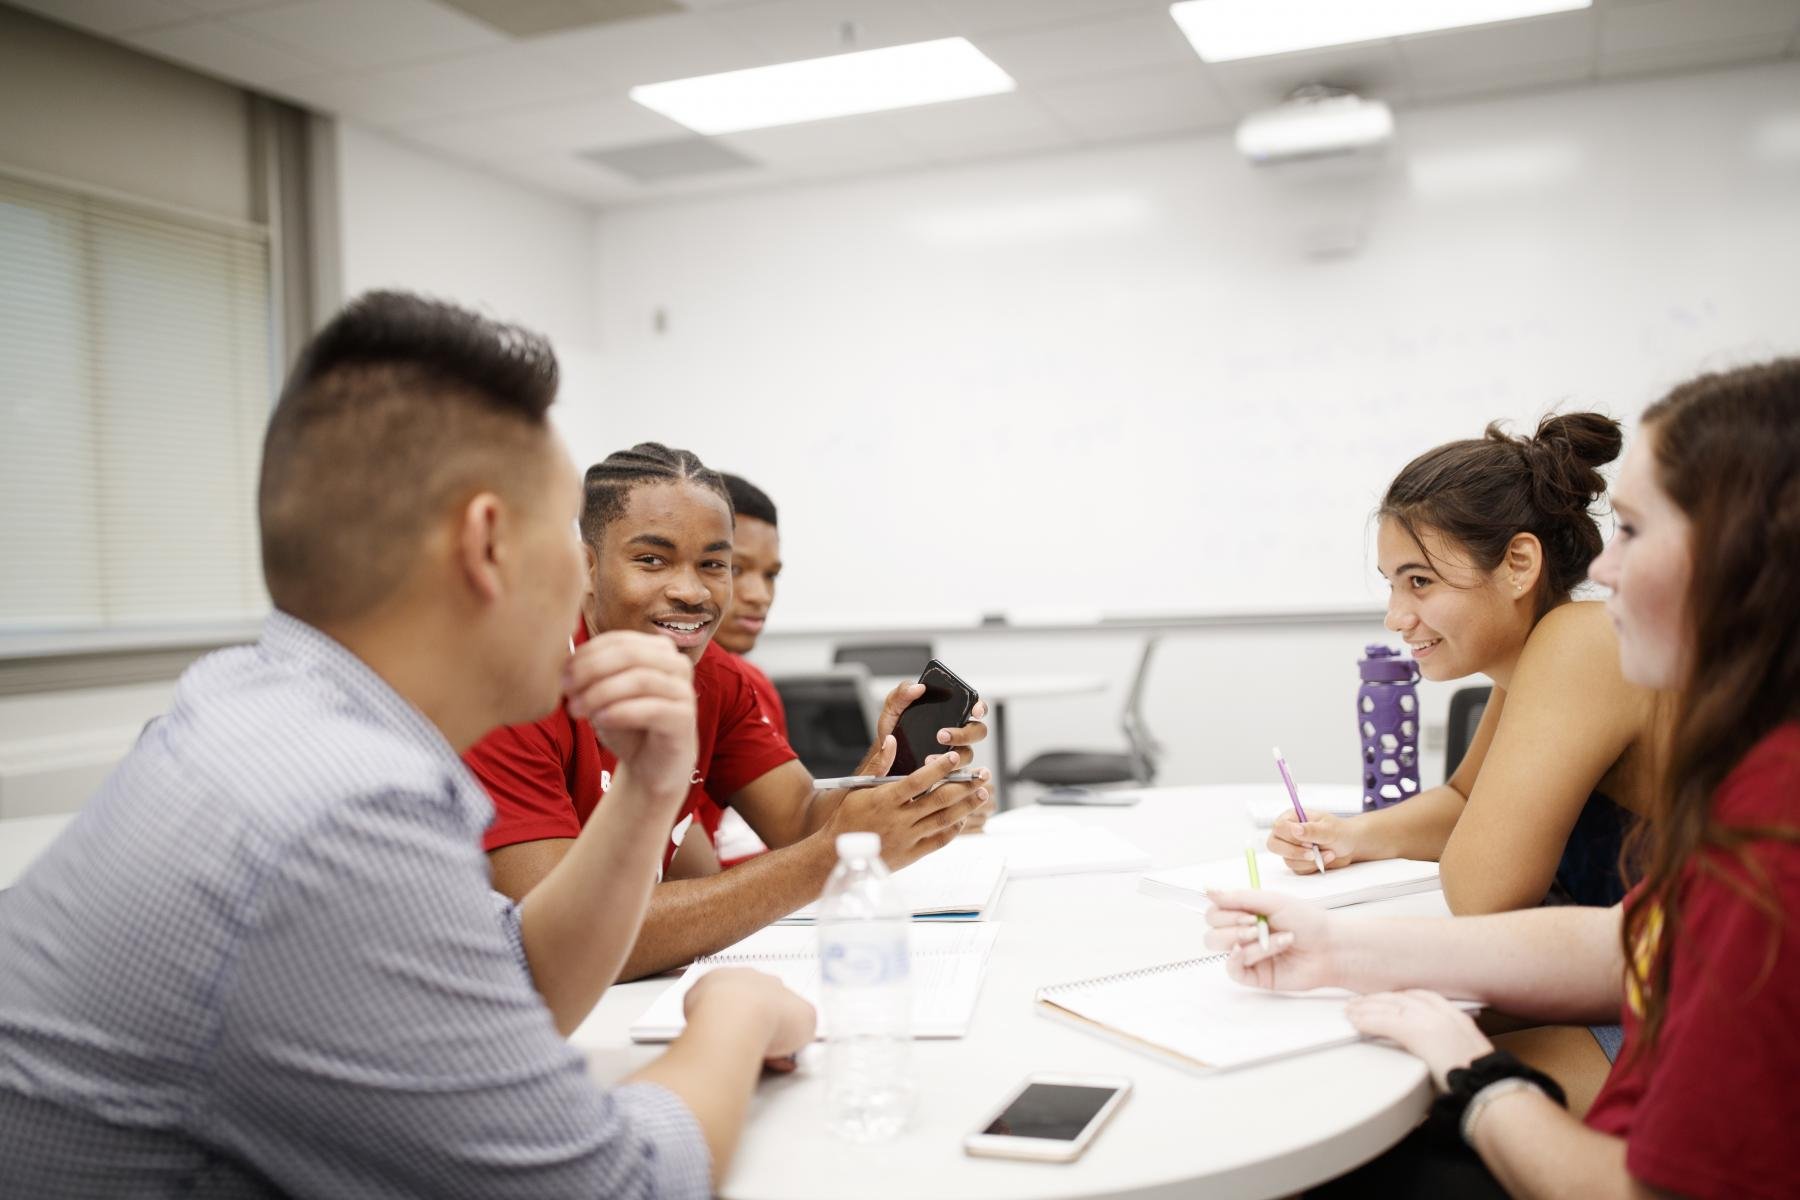 Mathematics graduate student Justin Nguyen assists students in Math 106: Calculus I in Fall 2019 in the newly renovated Louise Pound Hall.